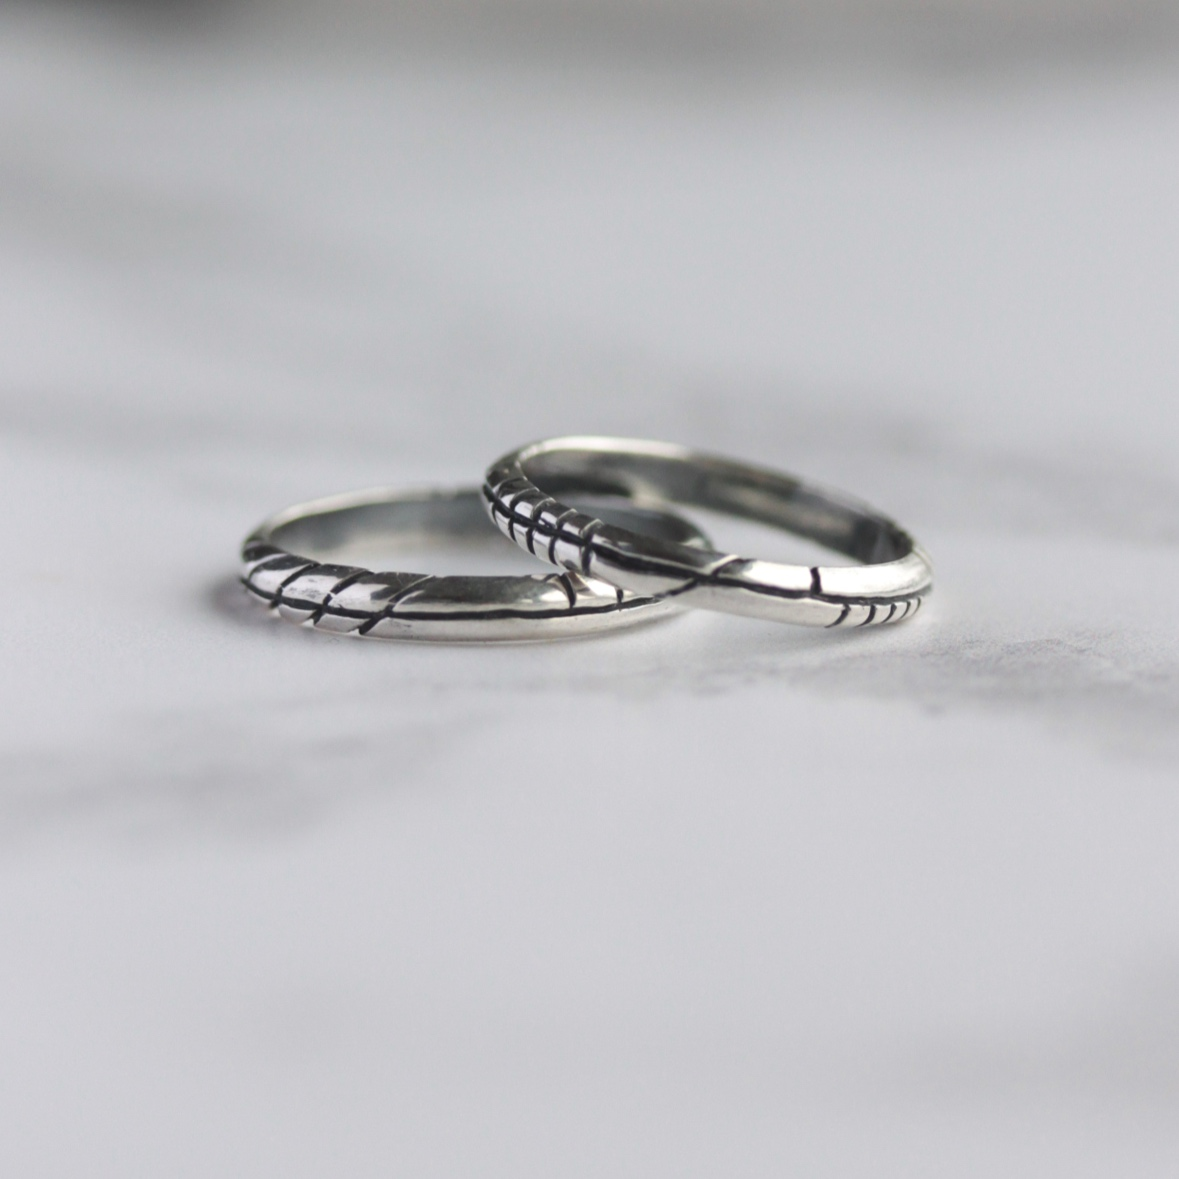 A set of silver rings, etched with Ogham lines, an ancient Irish alphabet.